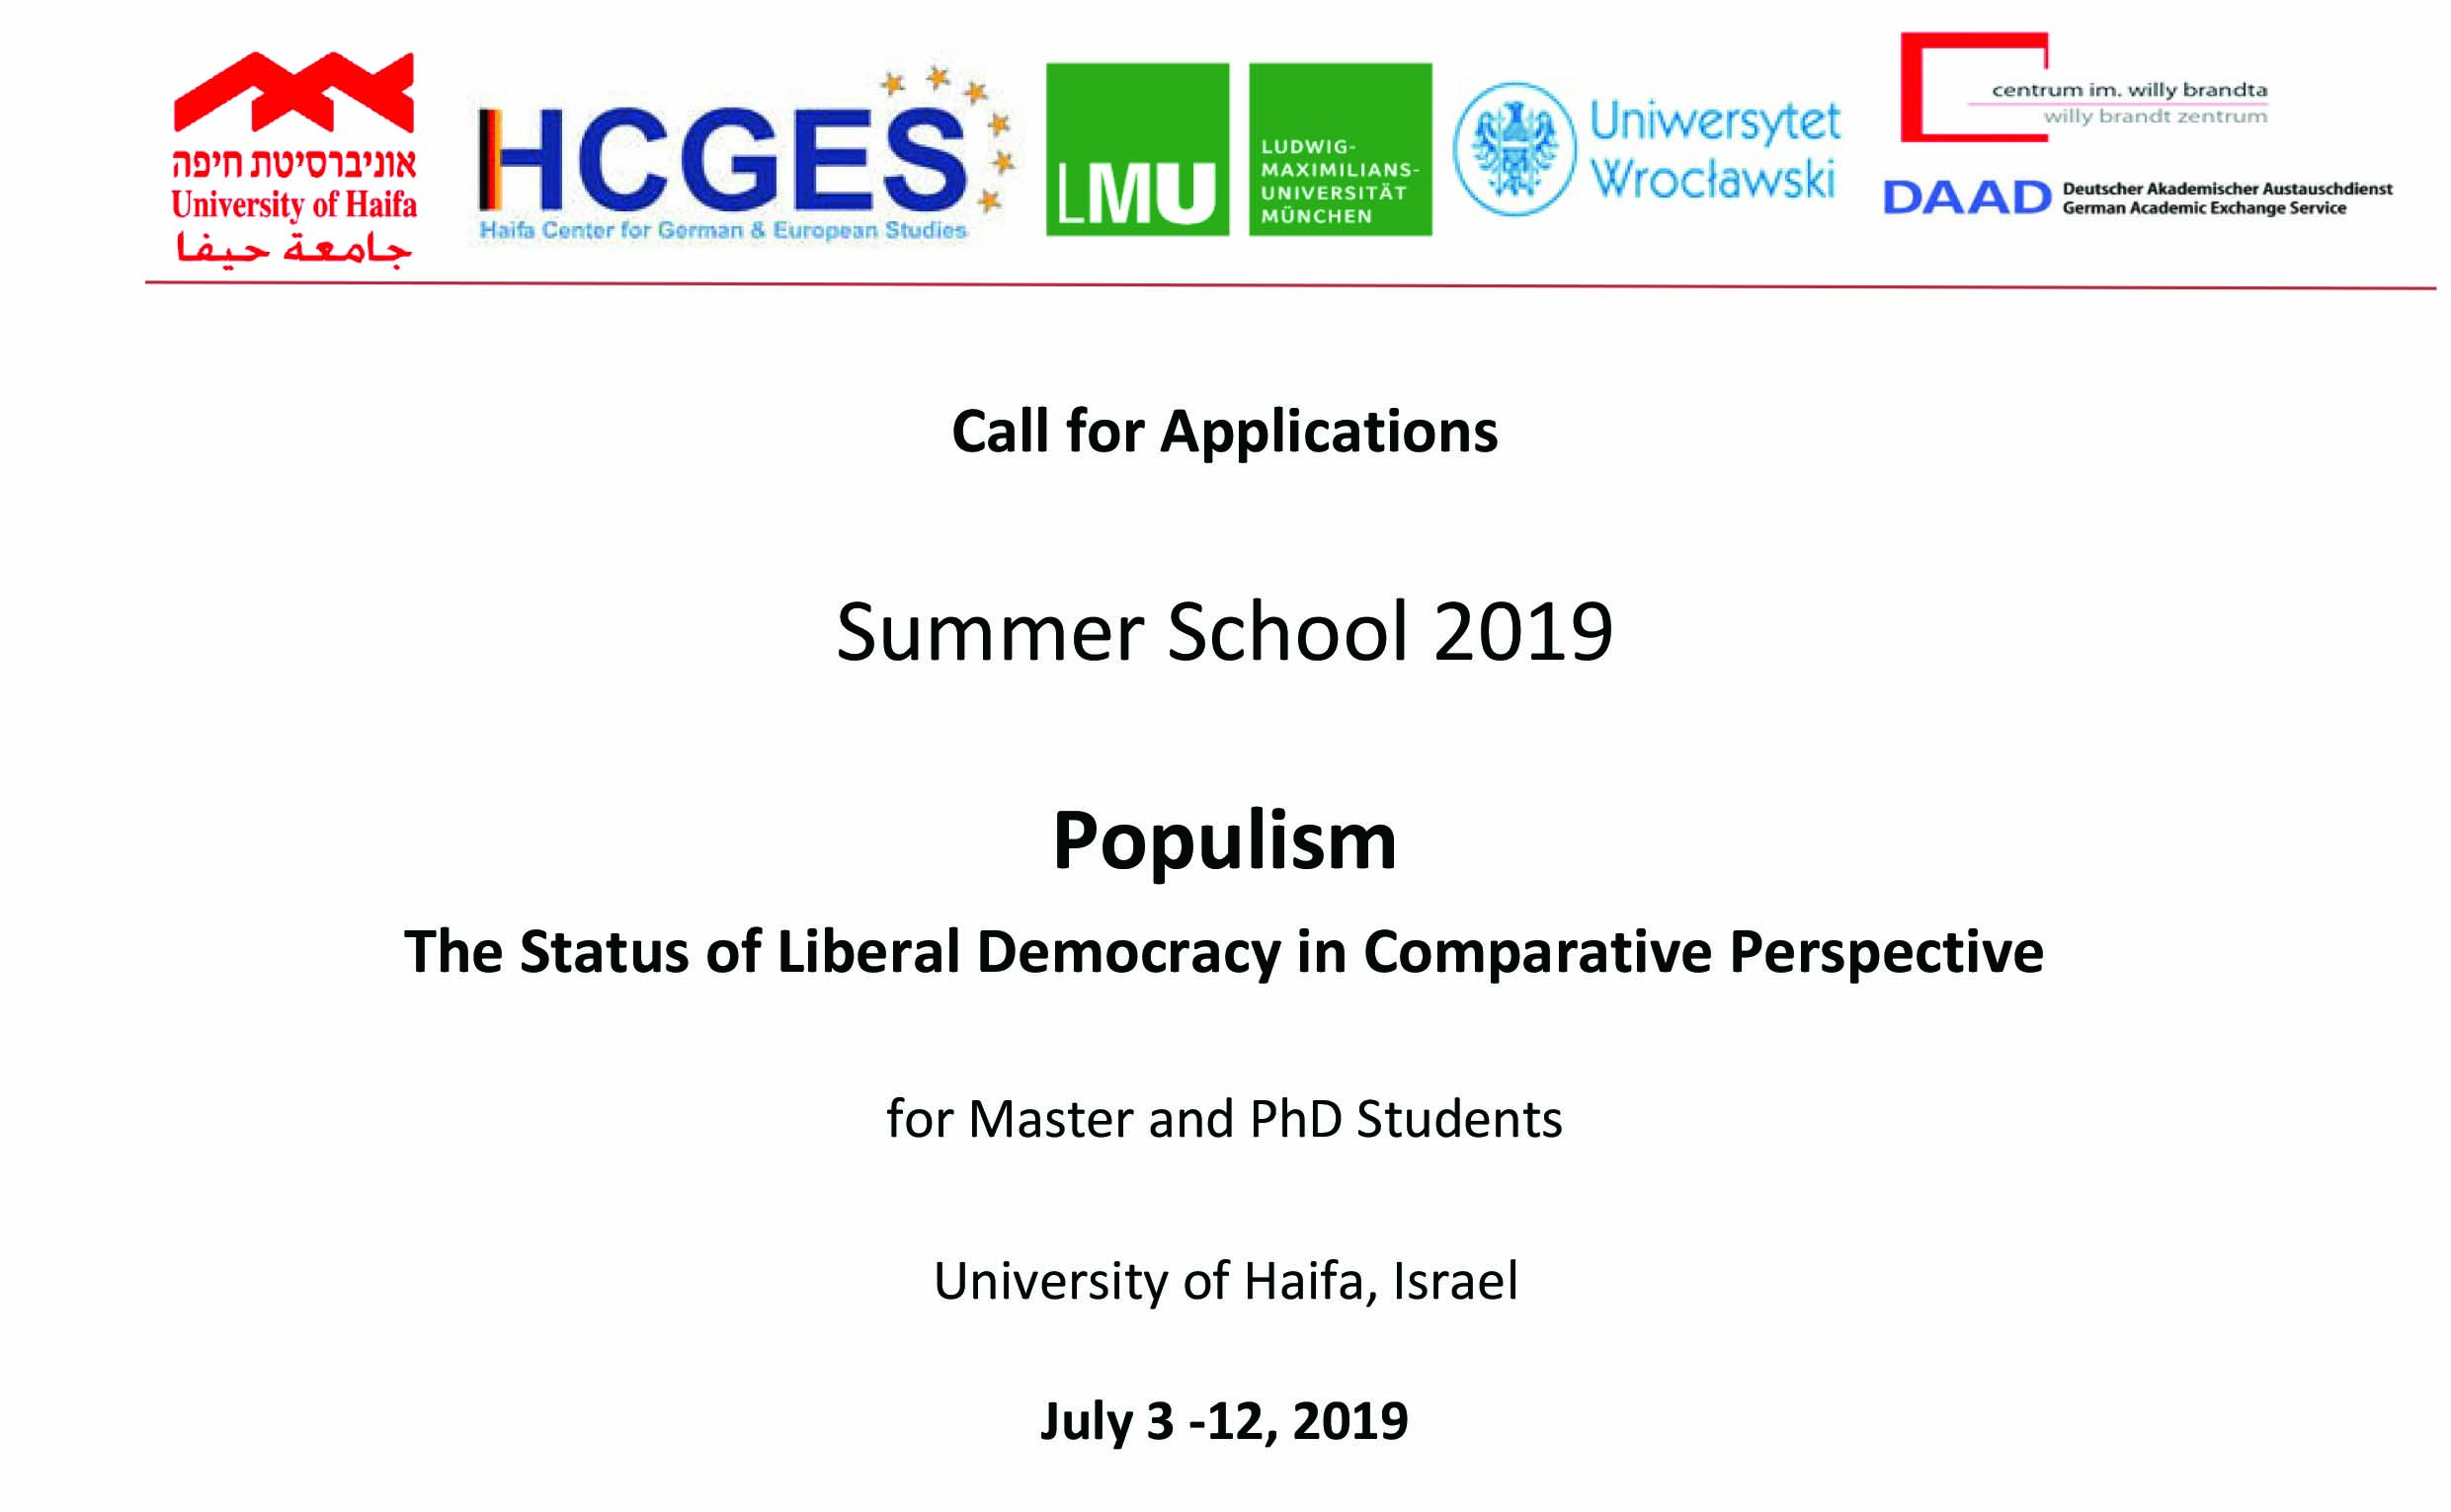 CfA HCGES SummerSchool July 2019 final-1